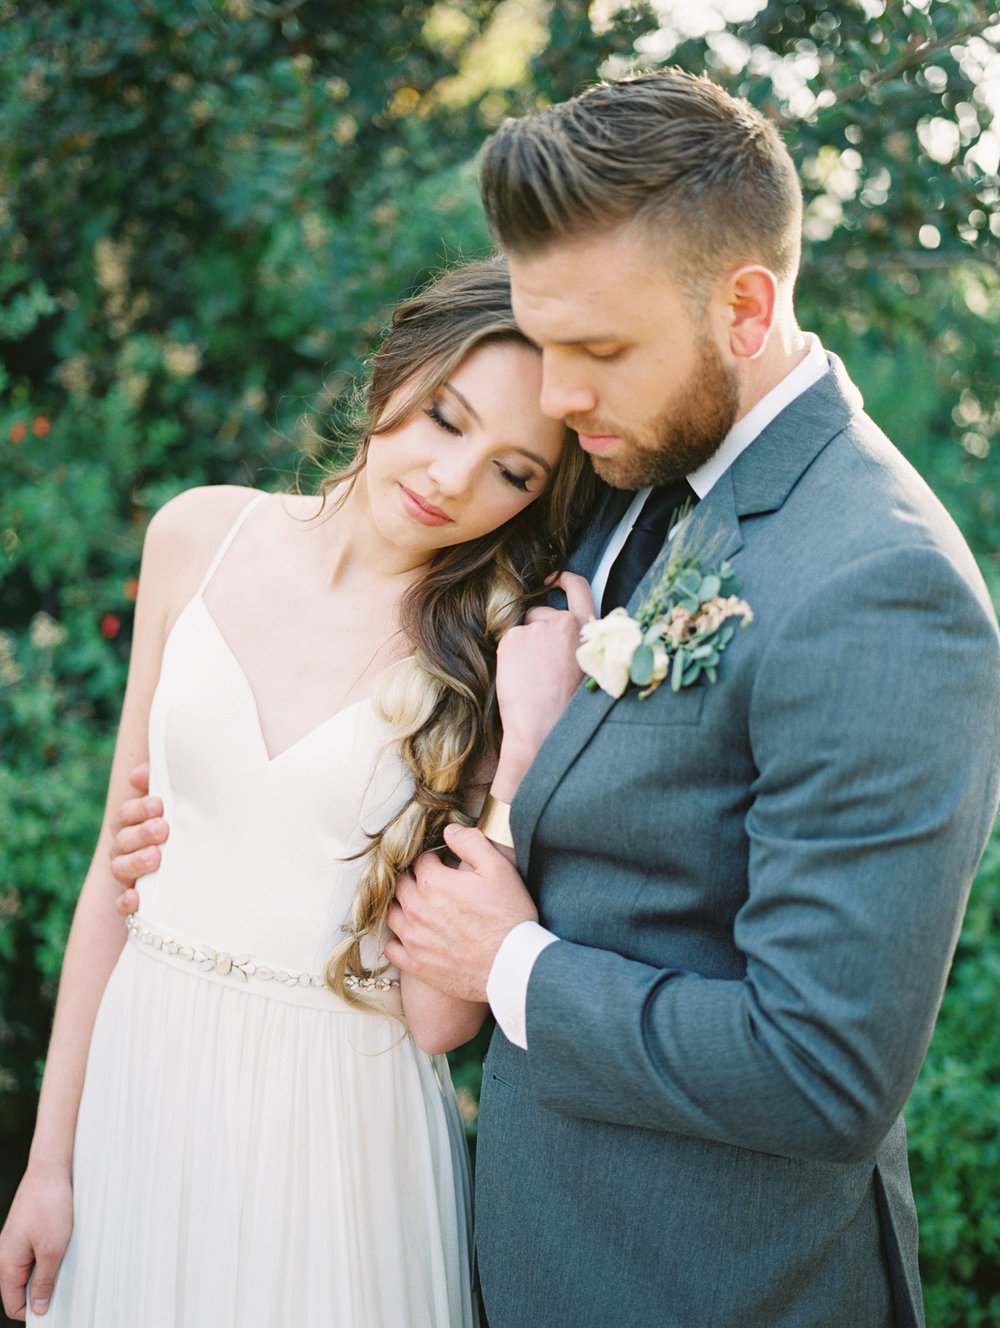 Amy-Golding-Wedding-Photography-SpringMarch2018(105of113).jpg